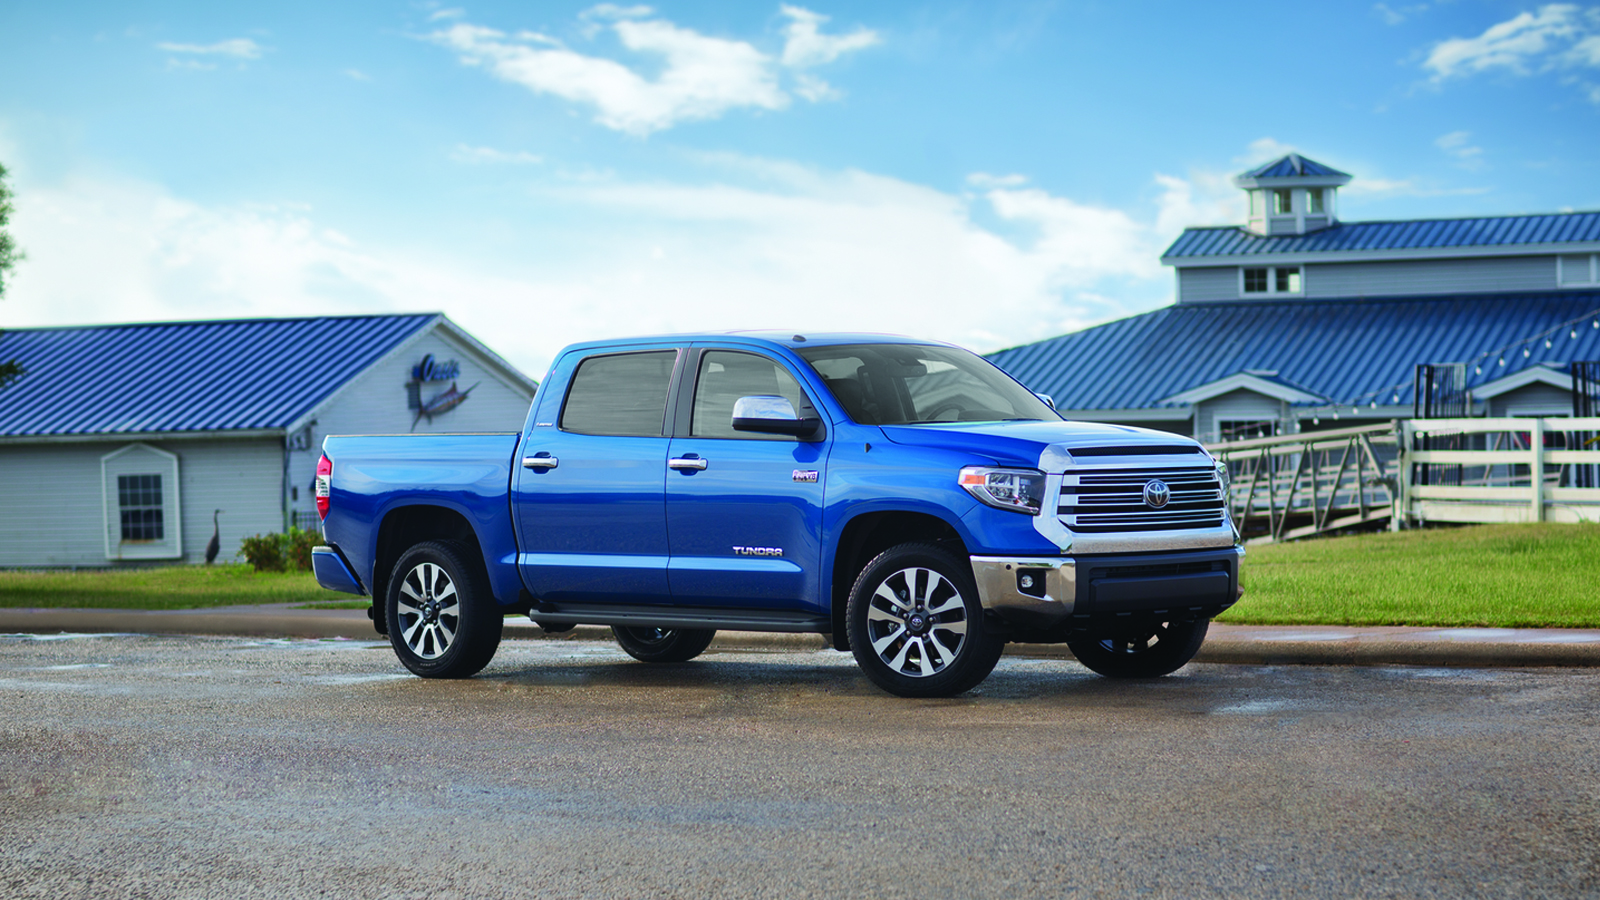 Introducing the 2018 Toyota Tundra | Peruzzi Toyota Blog